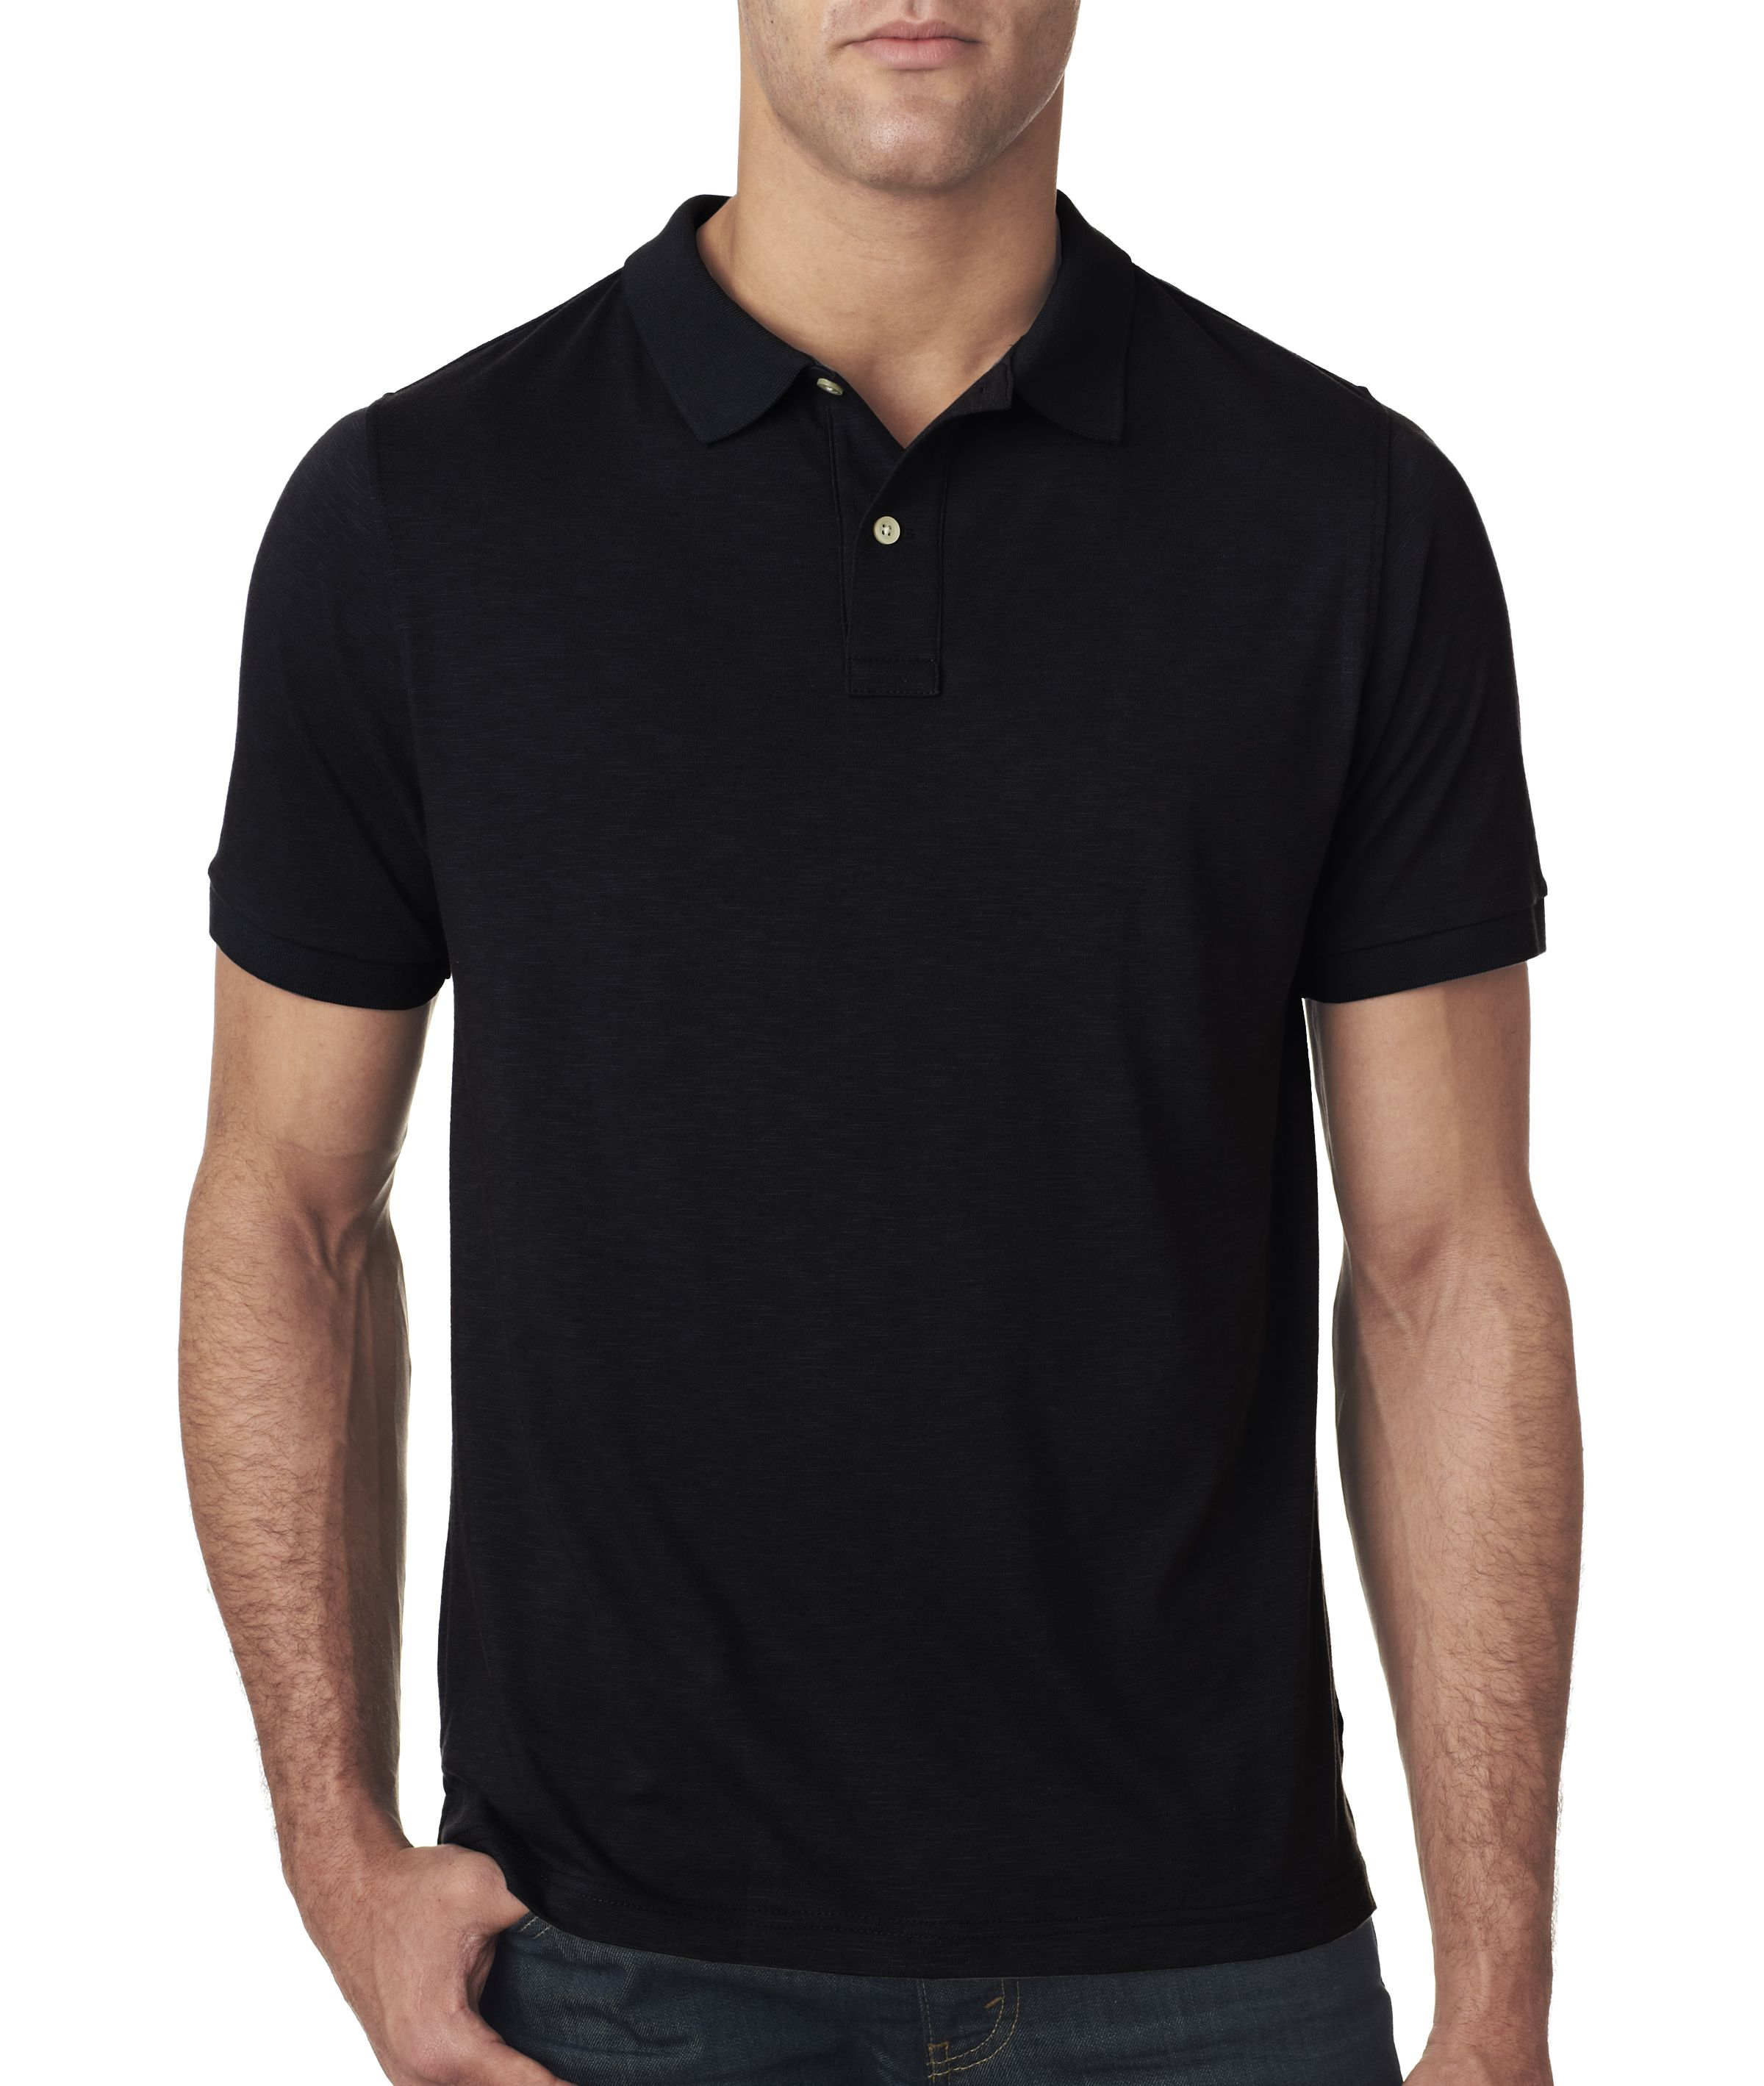 Next Level Apparel Men's Slub Polo Shirt. 6420 | Black polo shirt ...